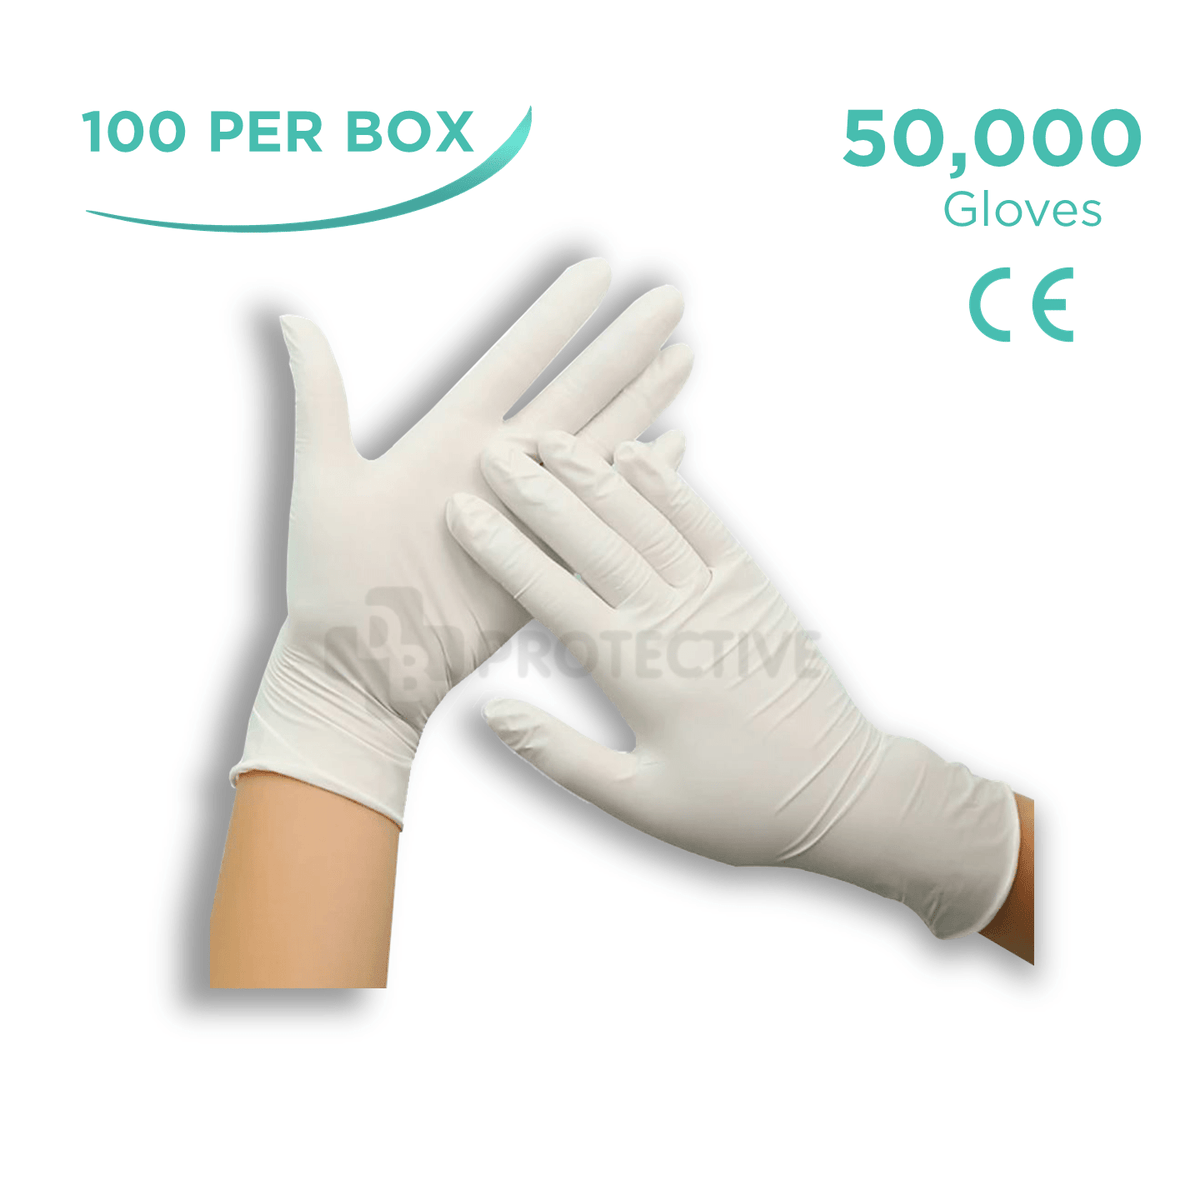 Latex Gloves - Pack of 50,000. - USA Medical Supply - DB Protective